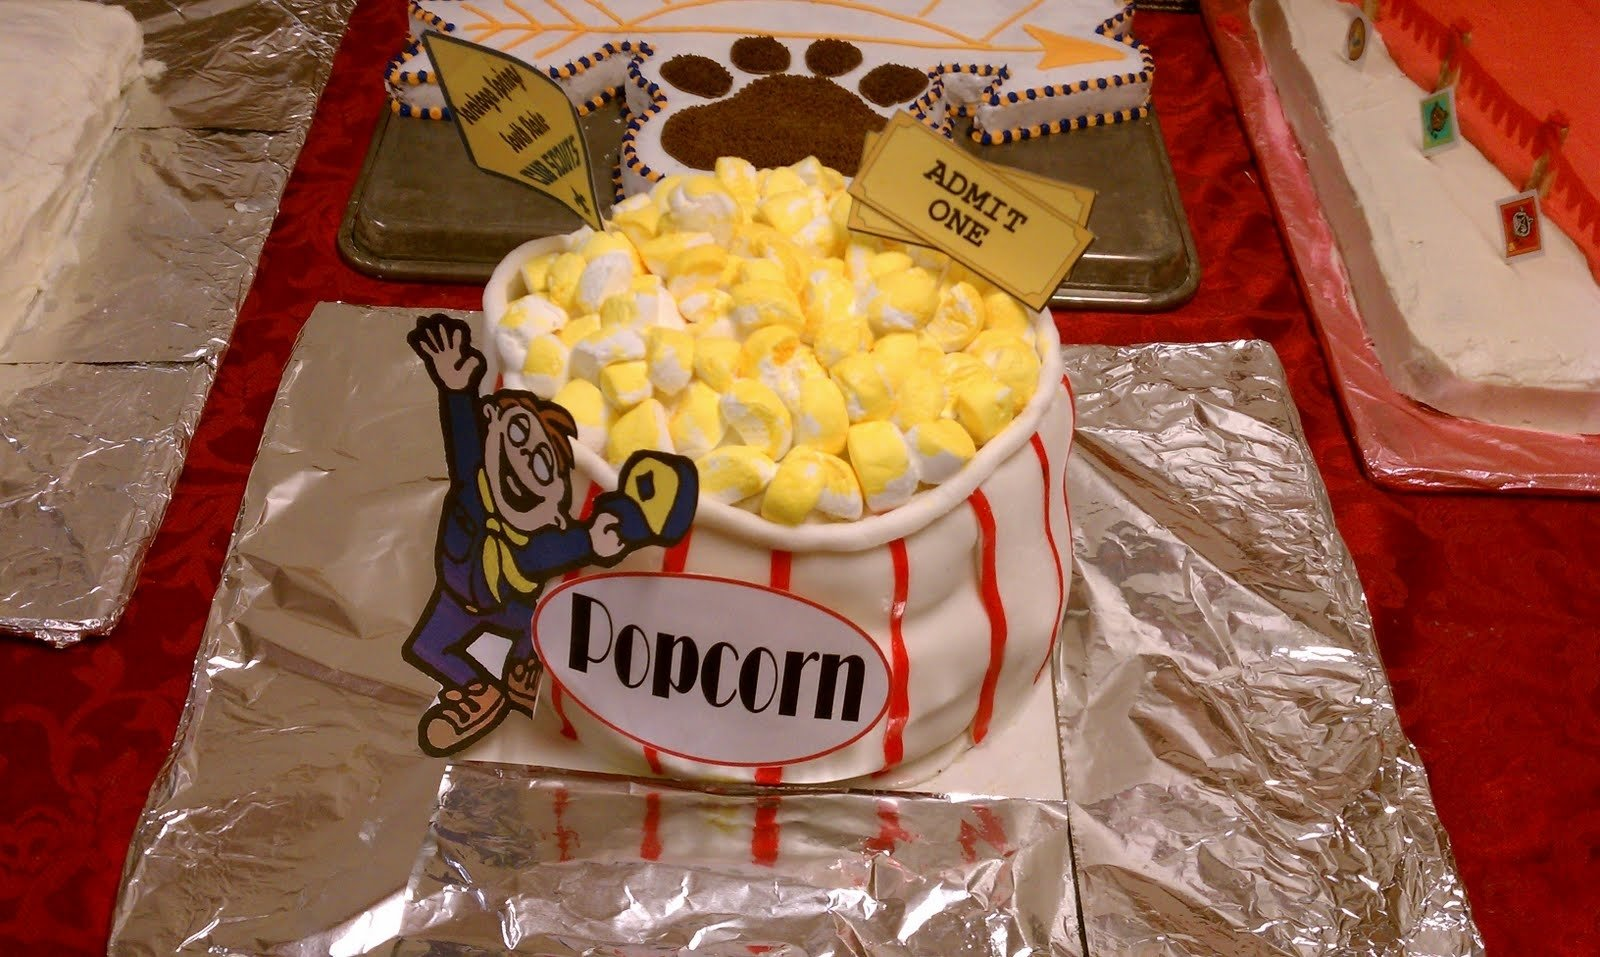 10 Cute Cub Scout Cake Decorating Ideas pony express district cub scouts cake decorating contest 2020